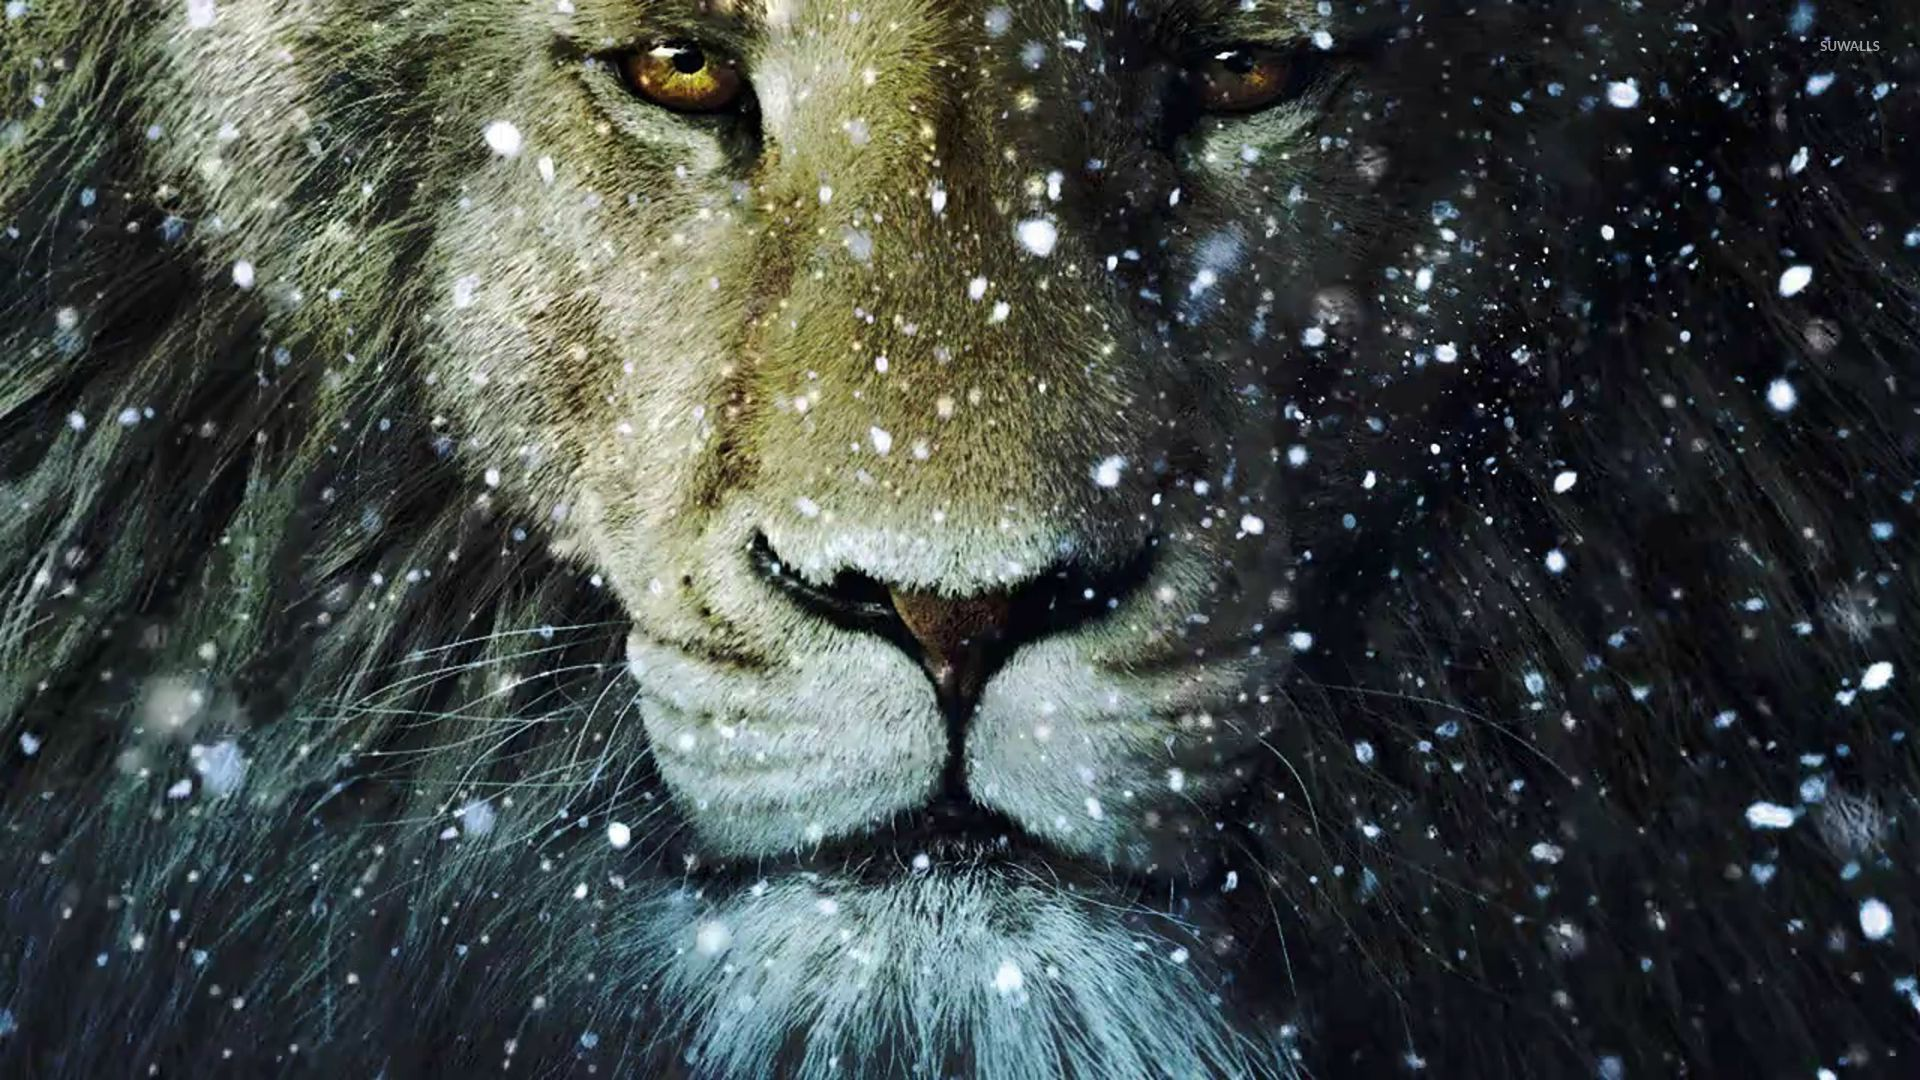 lion in the snow wallpaper - animal wallpapers - #29278